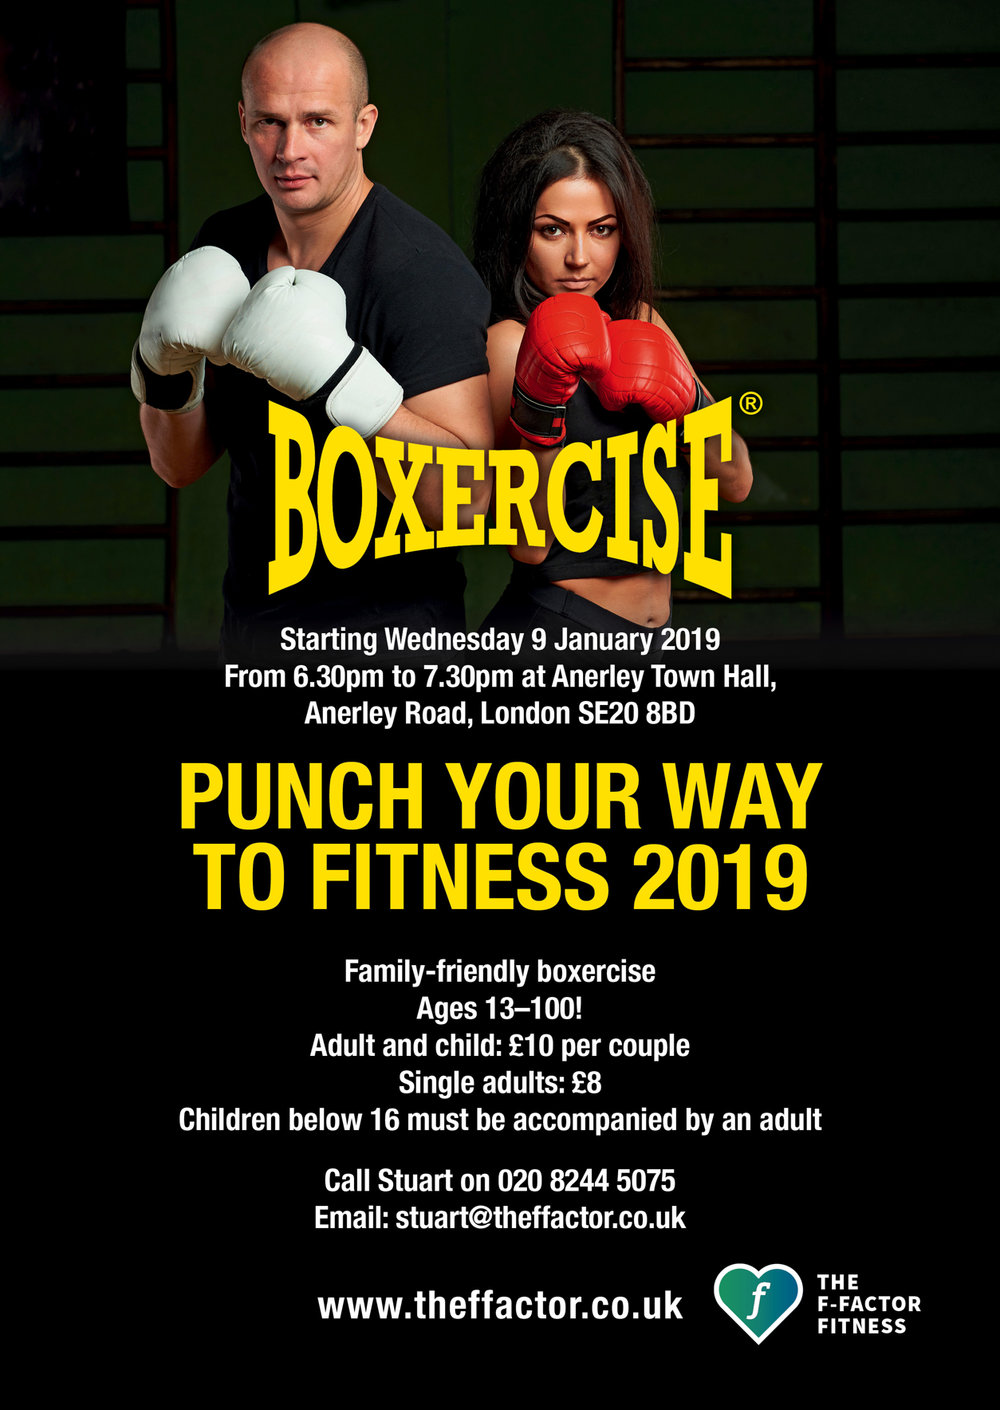 Boxercise A6 poster Anerley 2019 E01_cropped.jpg